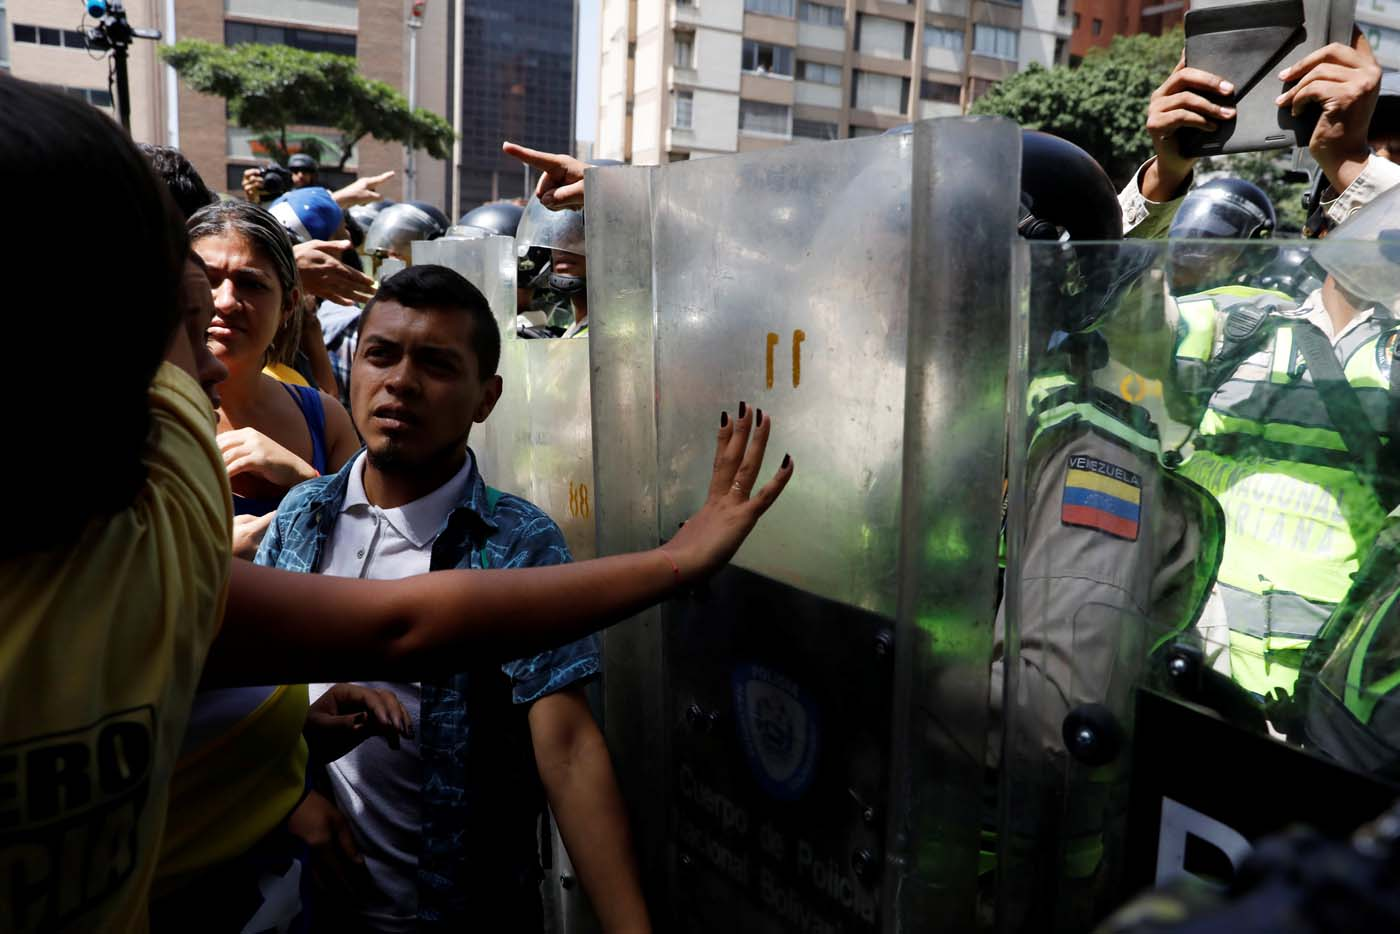 Security forces block demonstrators using riot shields during an opposition rally in Caracas, Venezuela April 4, 2017. REUTERS/Carlos Garcia Rawlins